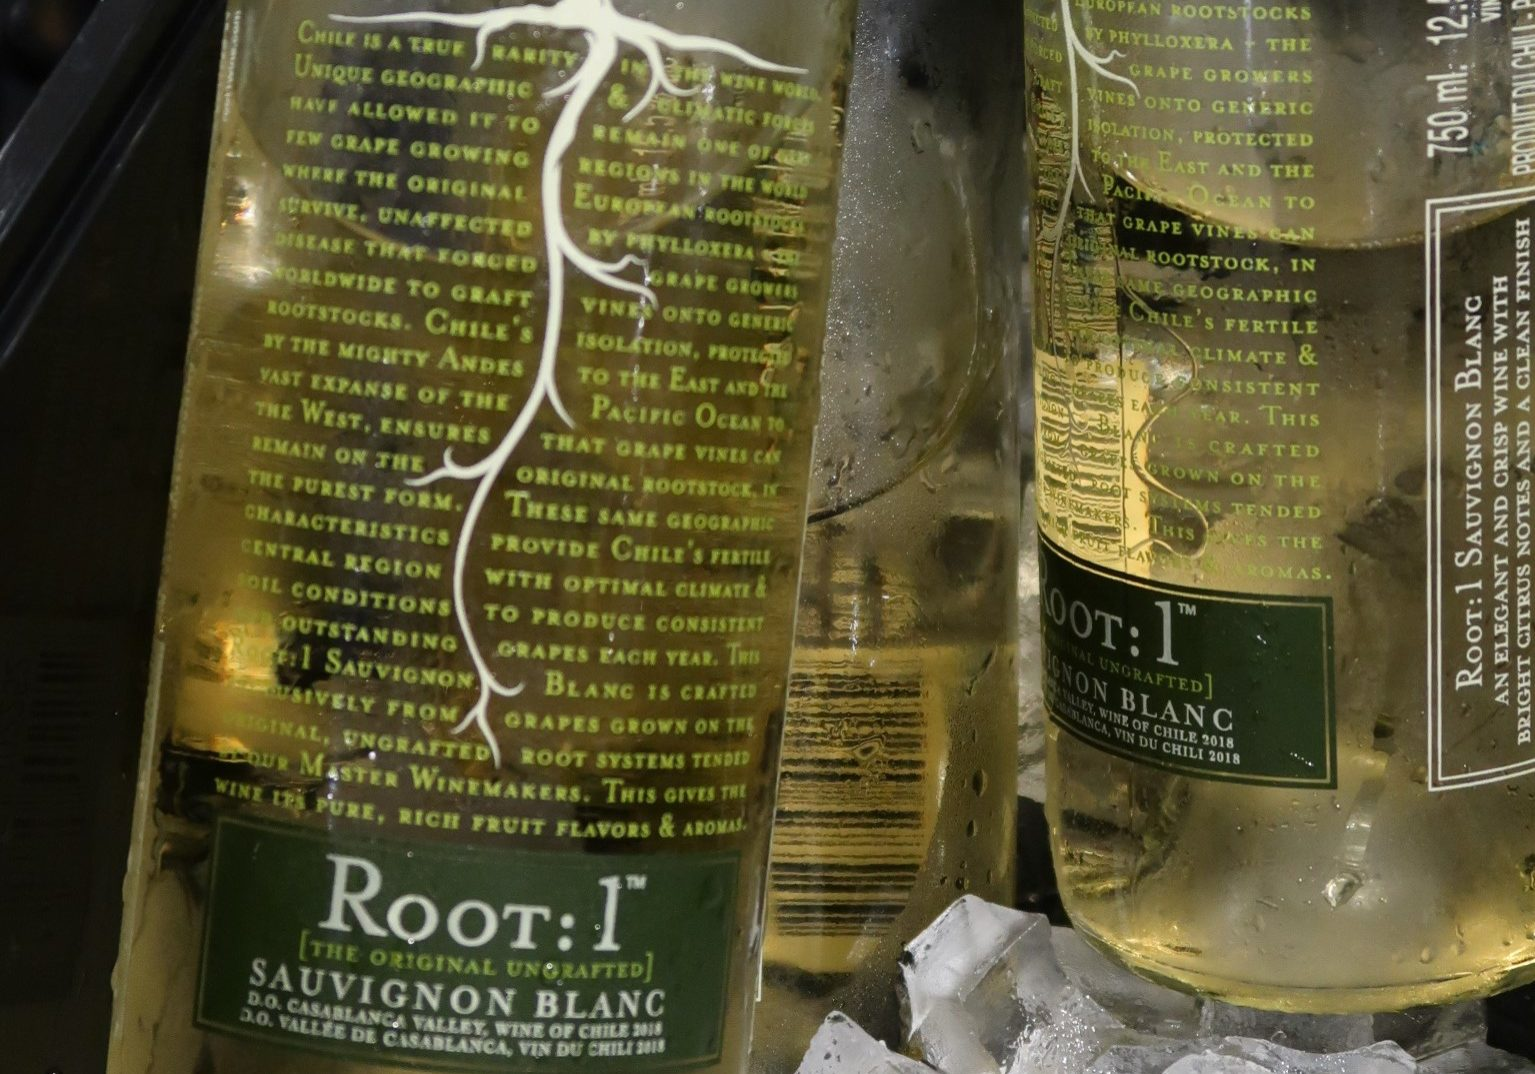 Univins & Spirits Root: 1 Sauvignon Blanc 2018 Burlington Wine Club tasting May 2019